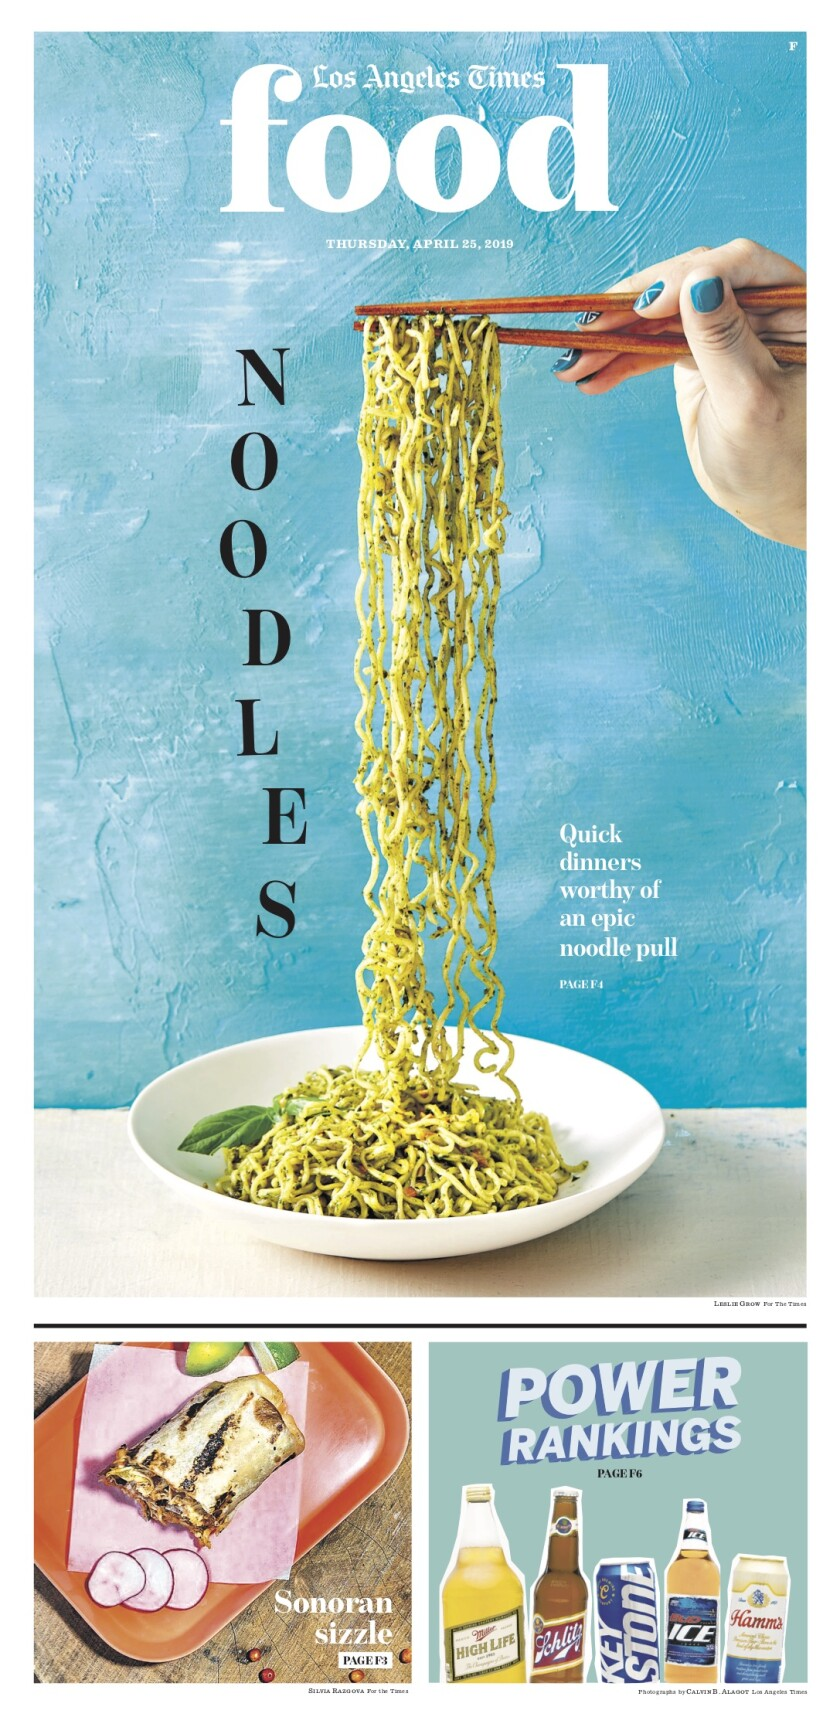 Los Angeles Times Food cover, April 25, 2019